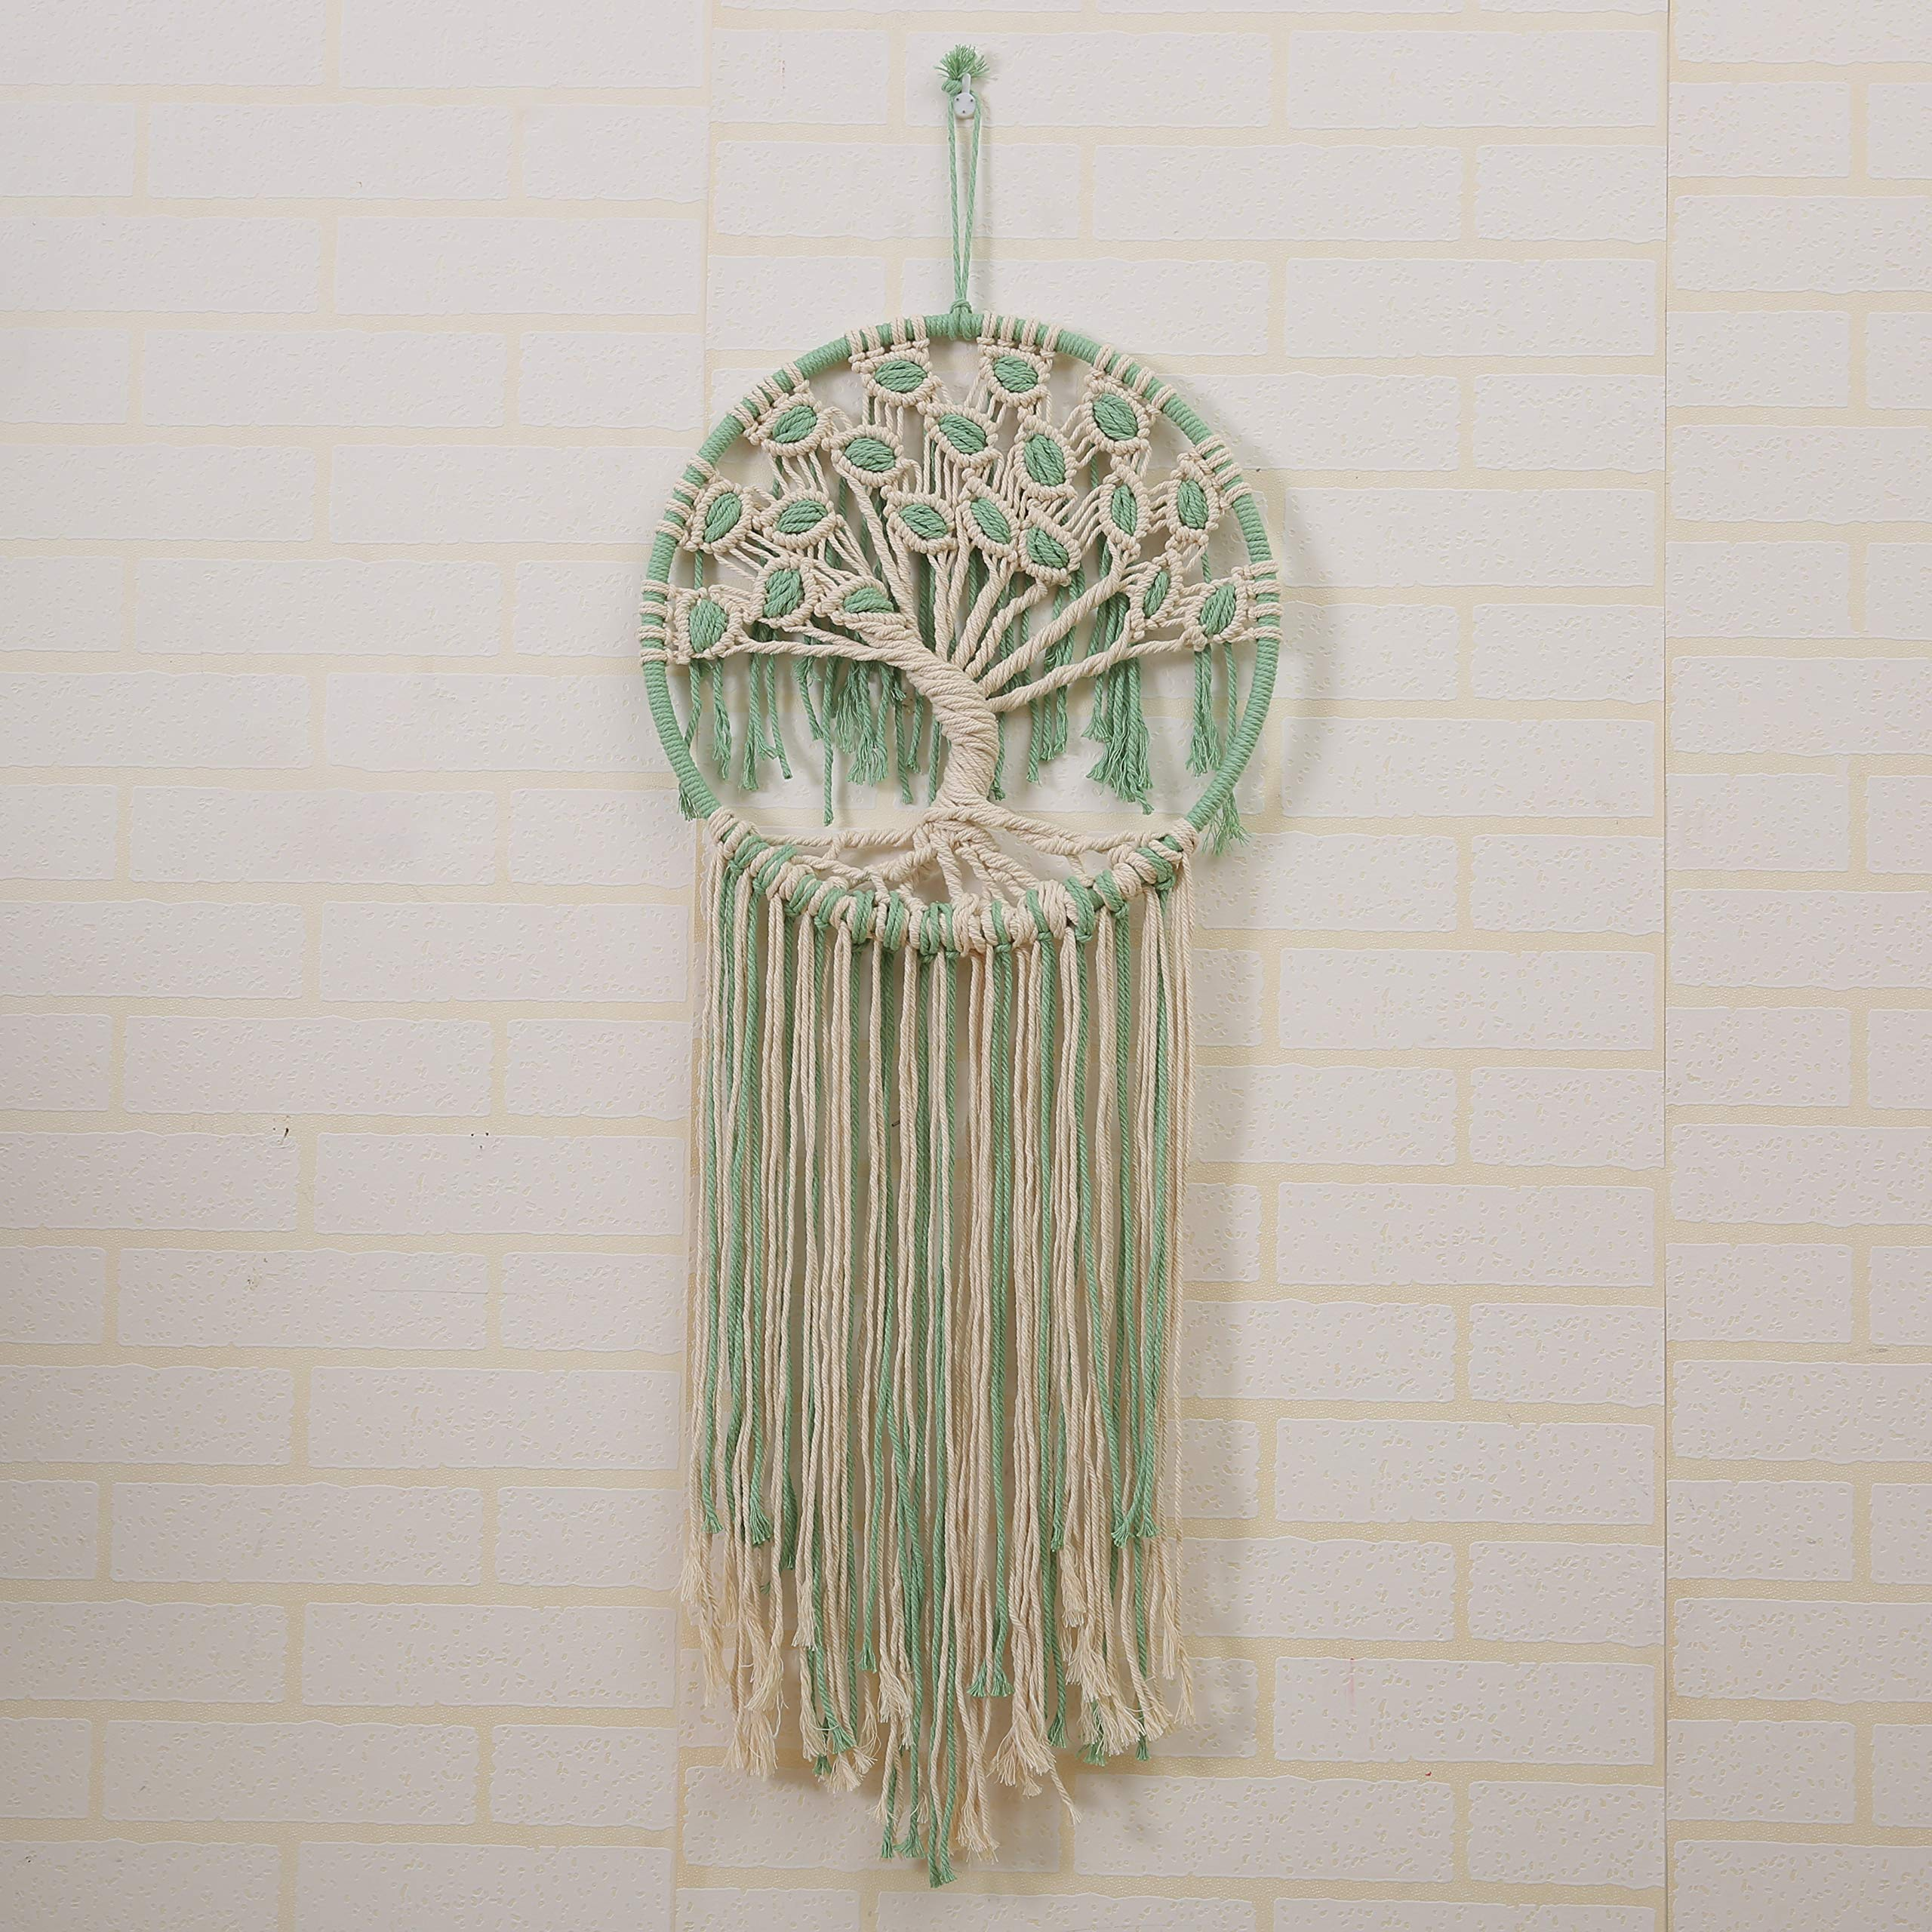 laddawan Macrame Wall Hanging Green and White Tree of Life Wall Art Decoration Home Decor Dream Catcher (X-Large) by laddawan